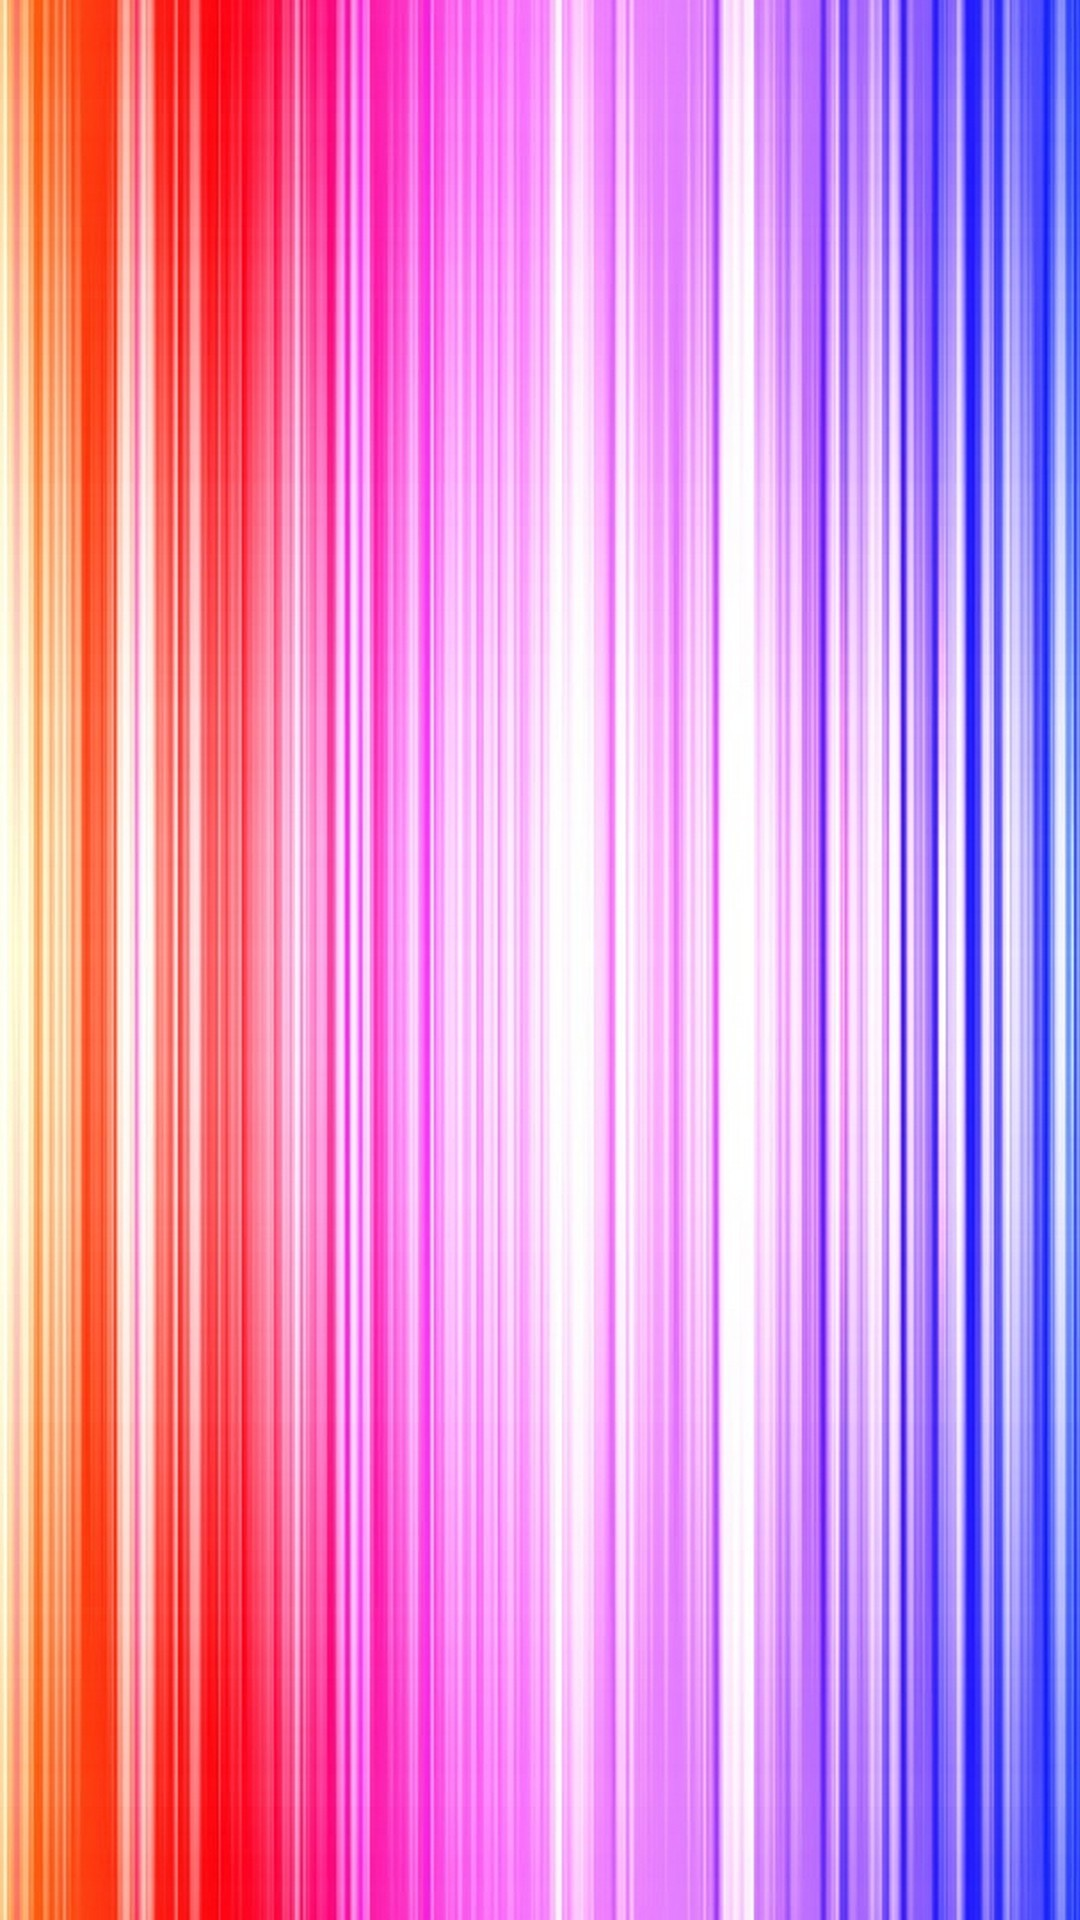 1080x1920 Wallpaper Rainbow Colors Android with image resolution  pixel. You  can make this wallpaper for